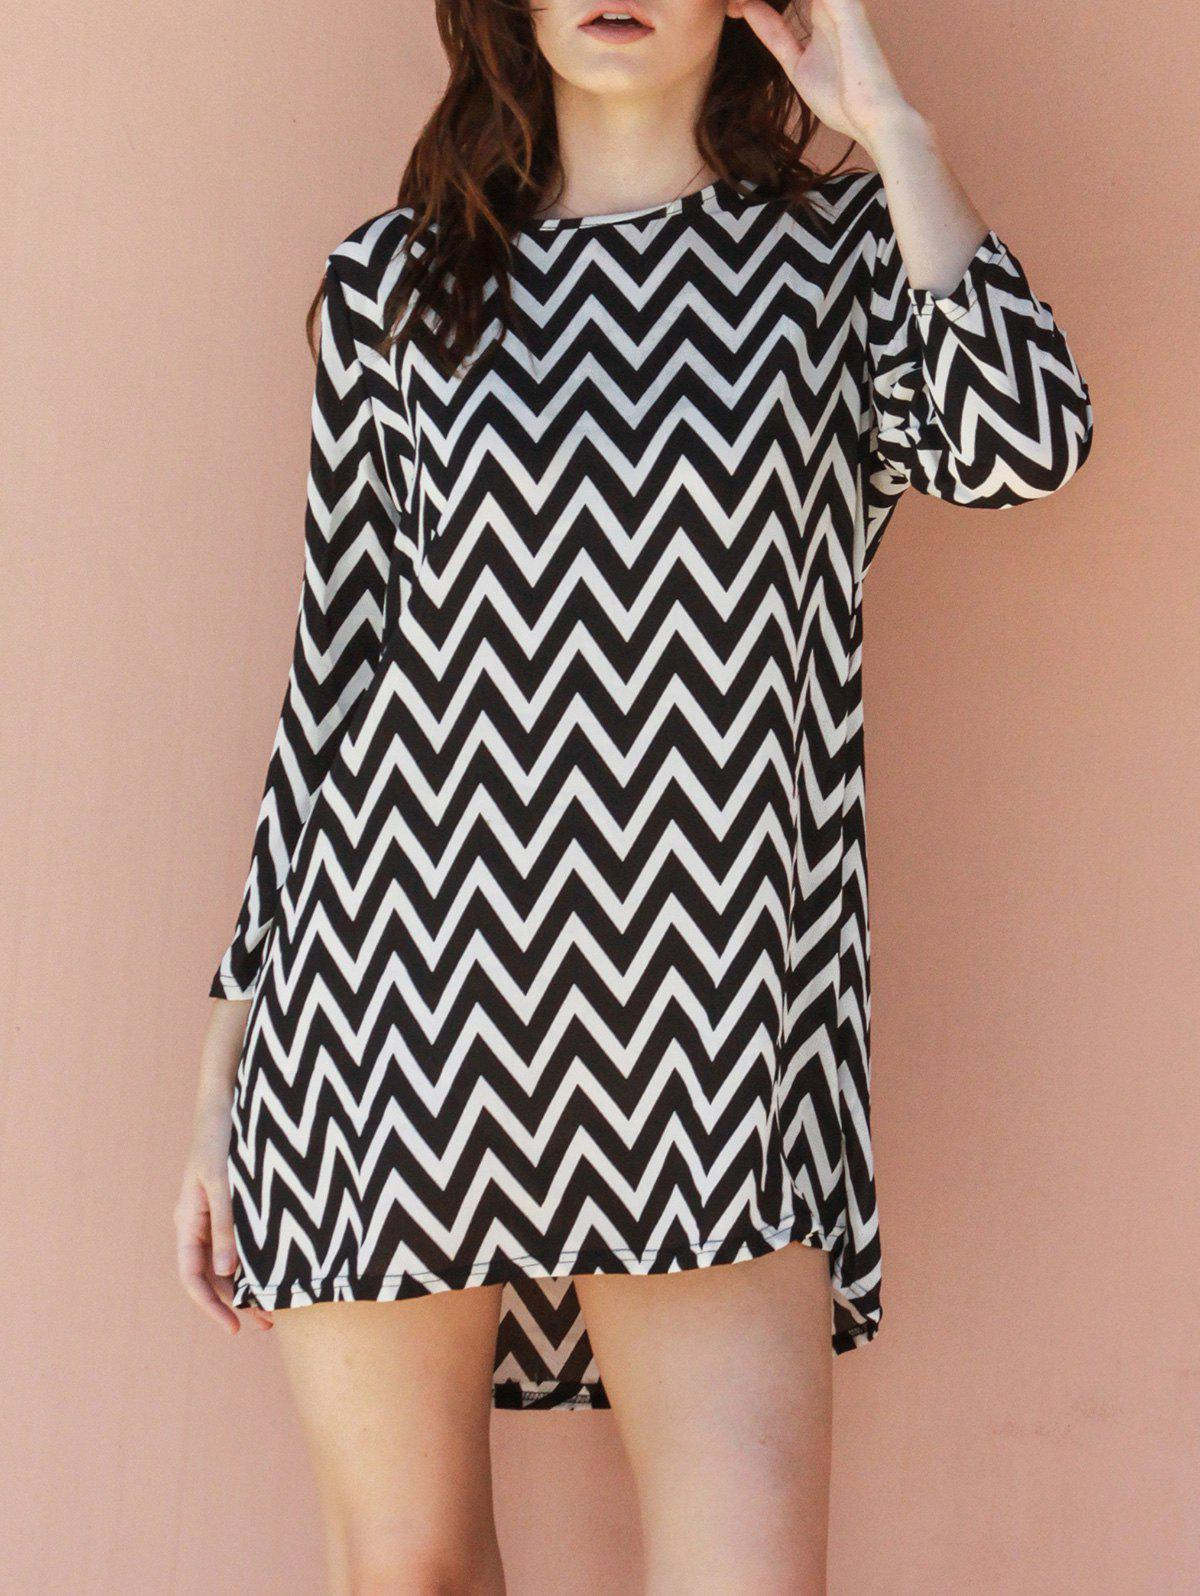 Casual Round Neck Long Sleeve Loose-Fitting Print Women's Dress - WHITE/BLACK ONE SIZE(FIT SIZE XS TO M)